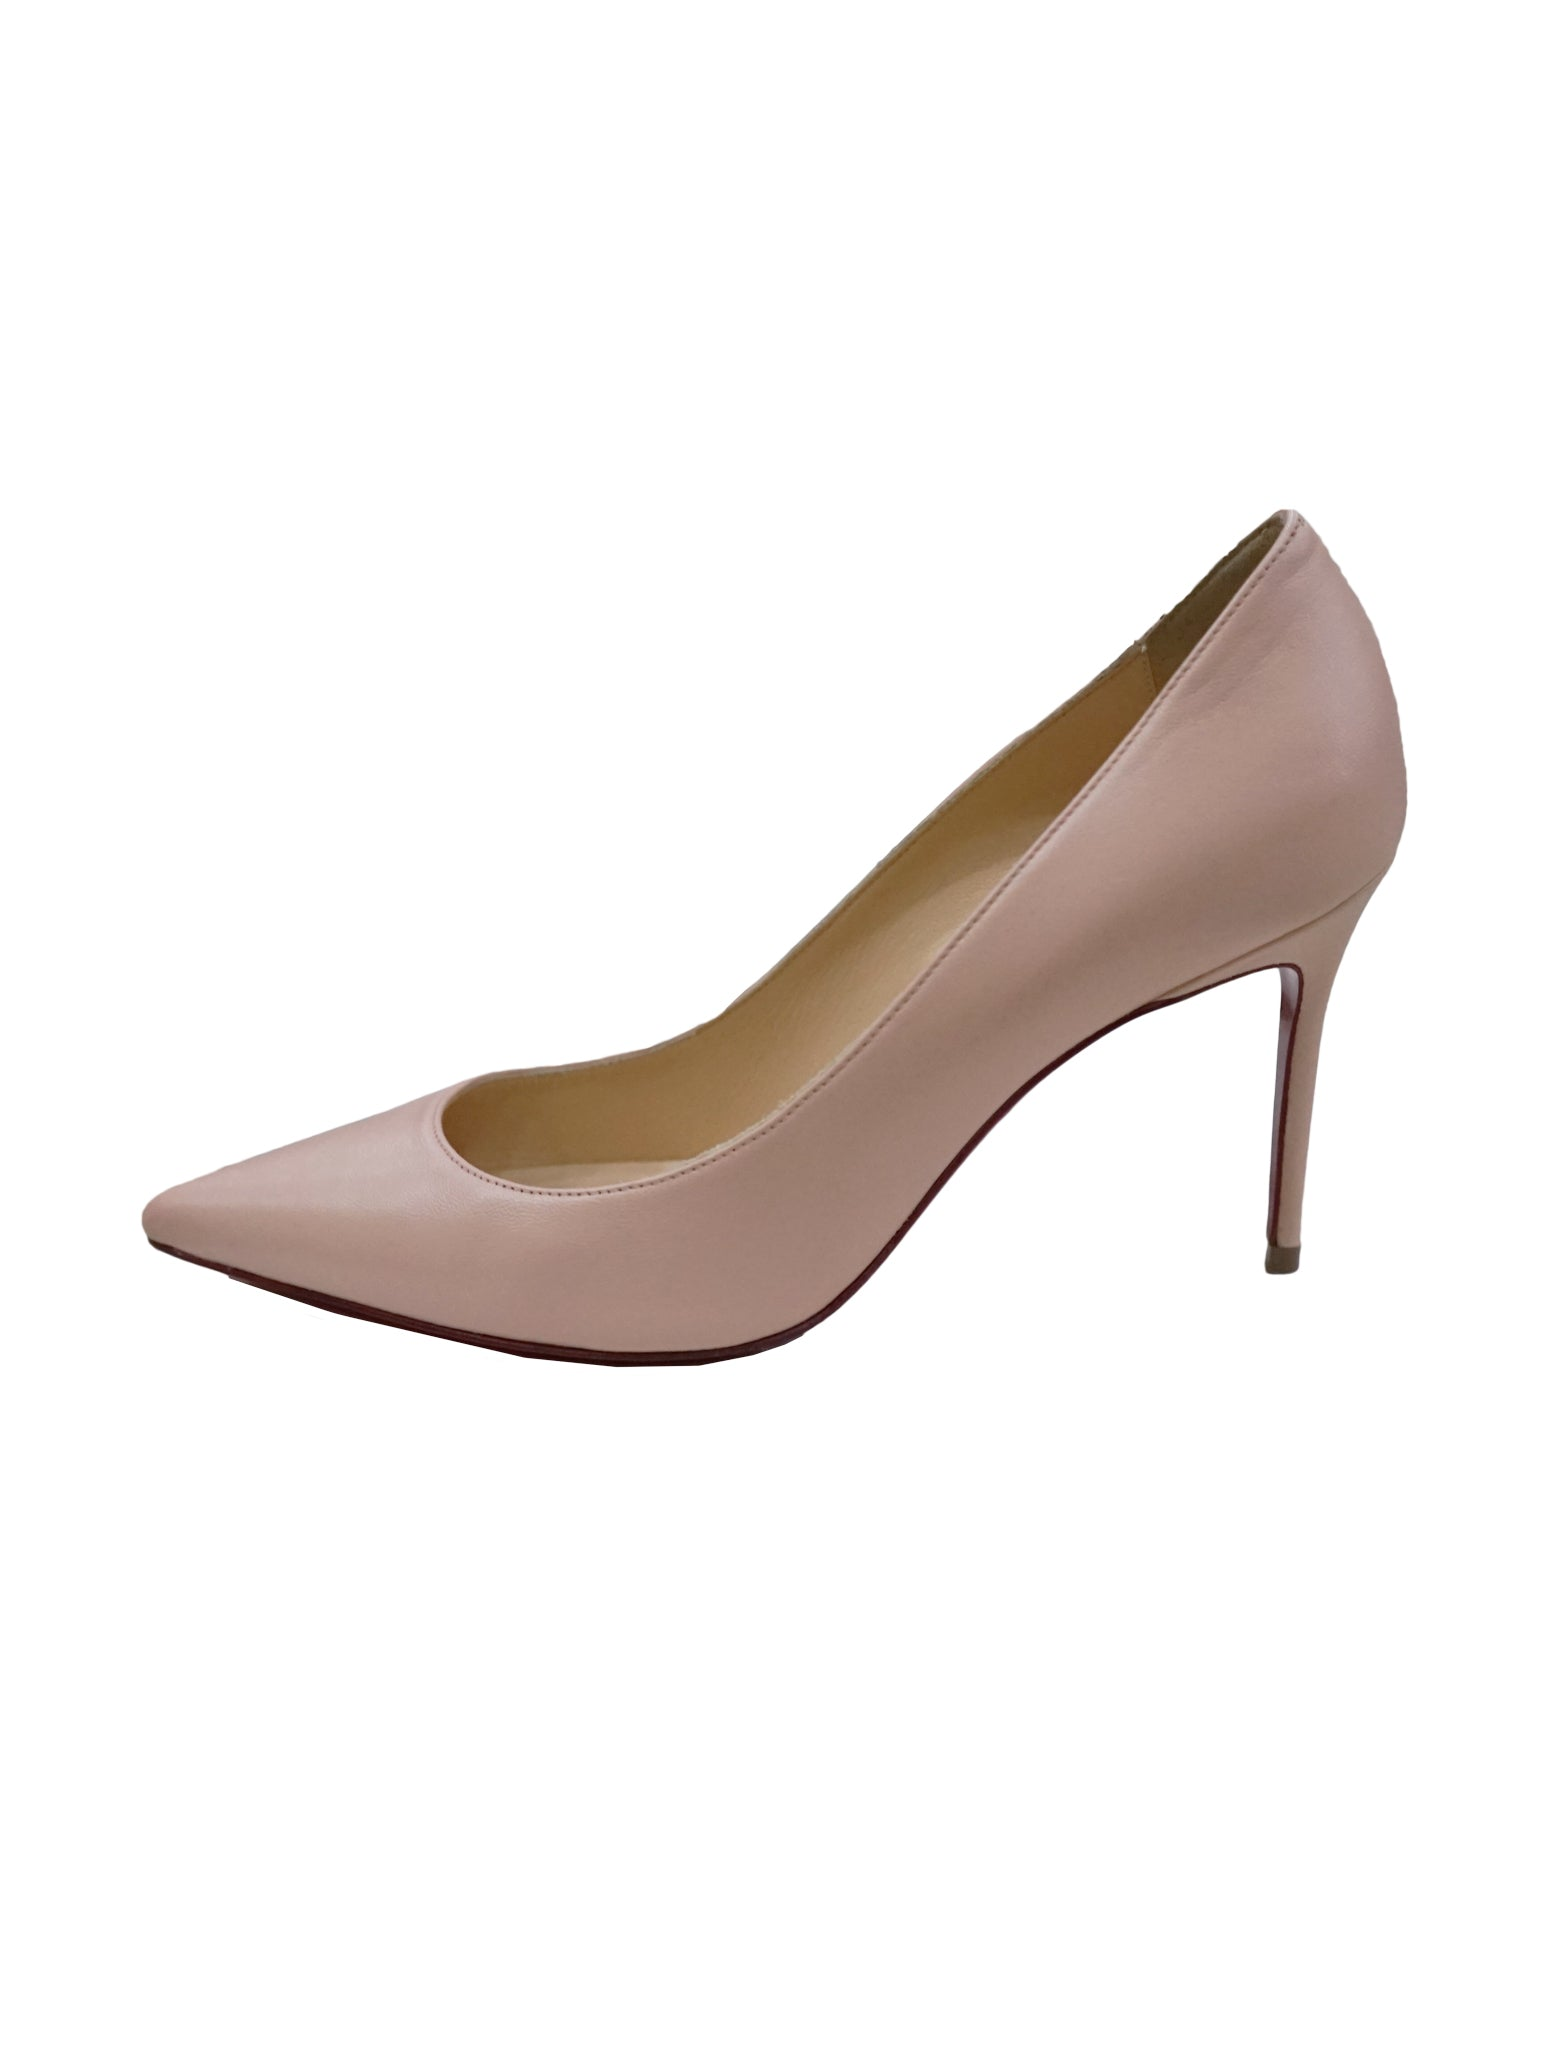 LIGHT PINK LEATHER SO KATE PUMPS